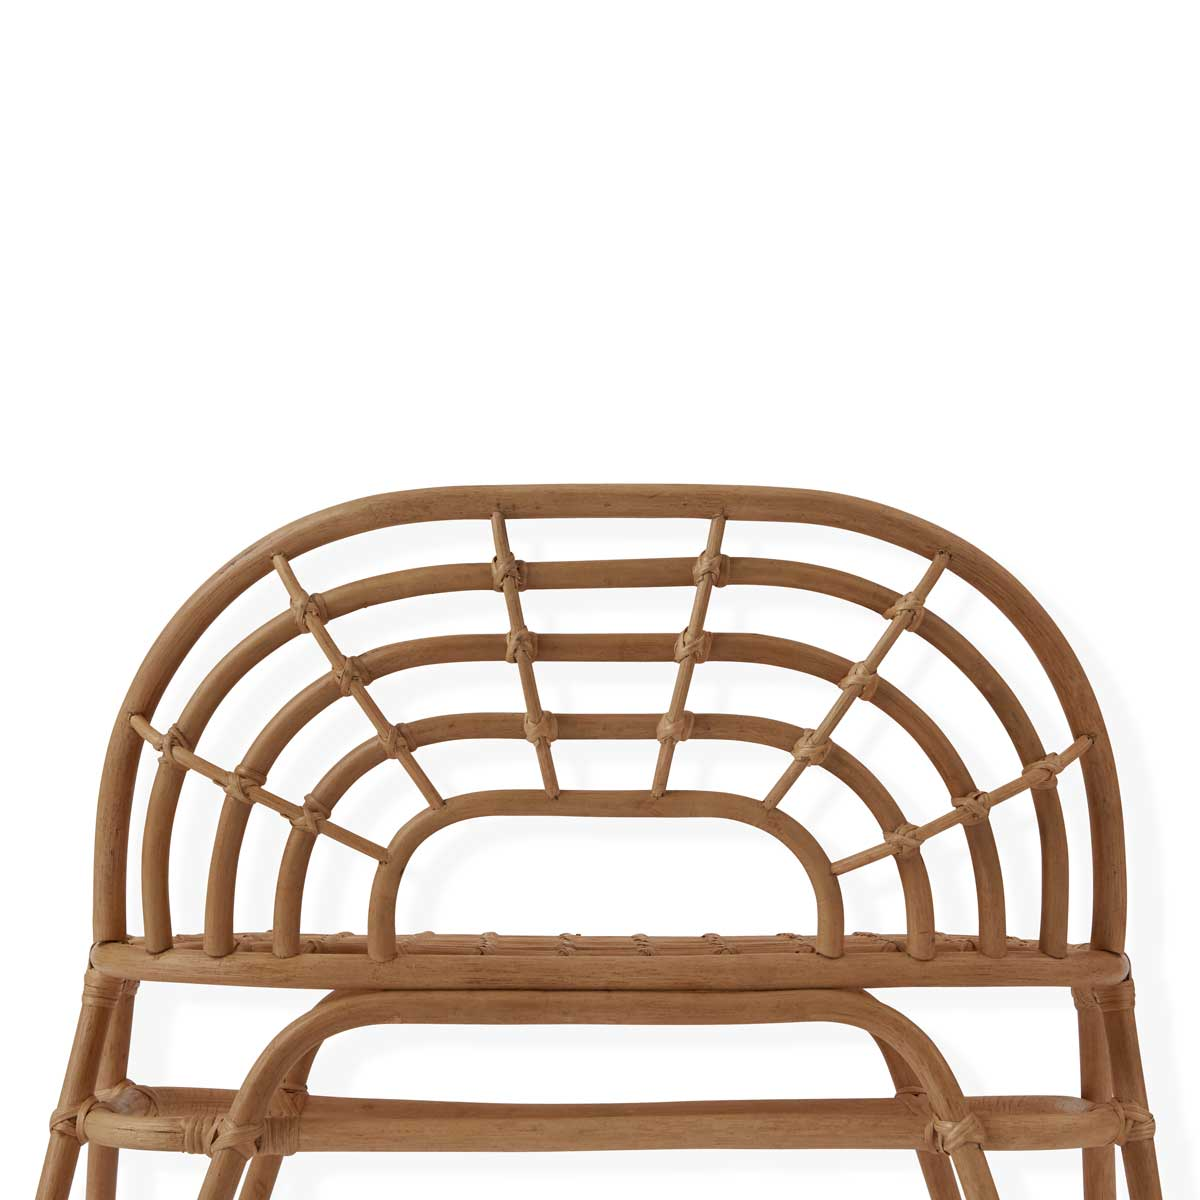 OYOY living design Rainbow Mini Bench Rattan Children's furniture